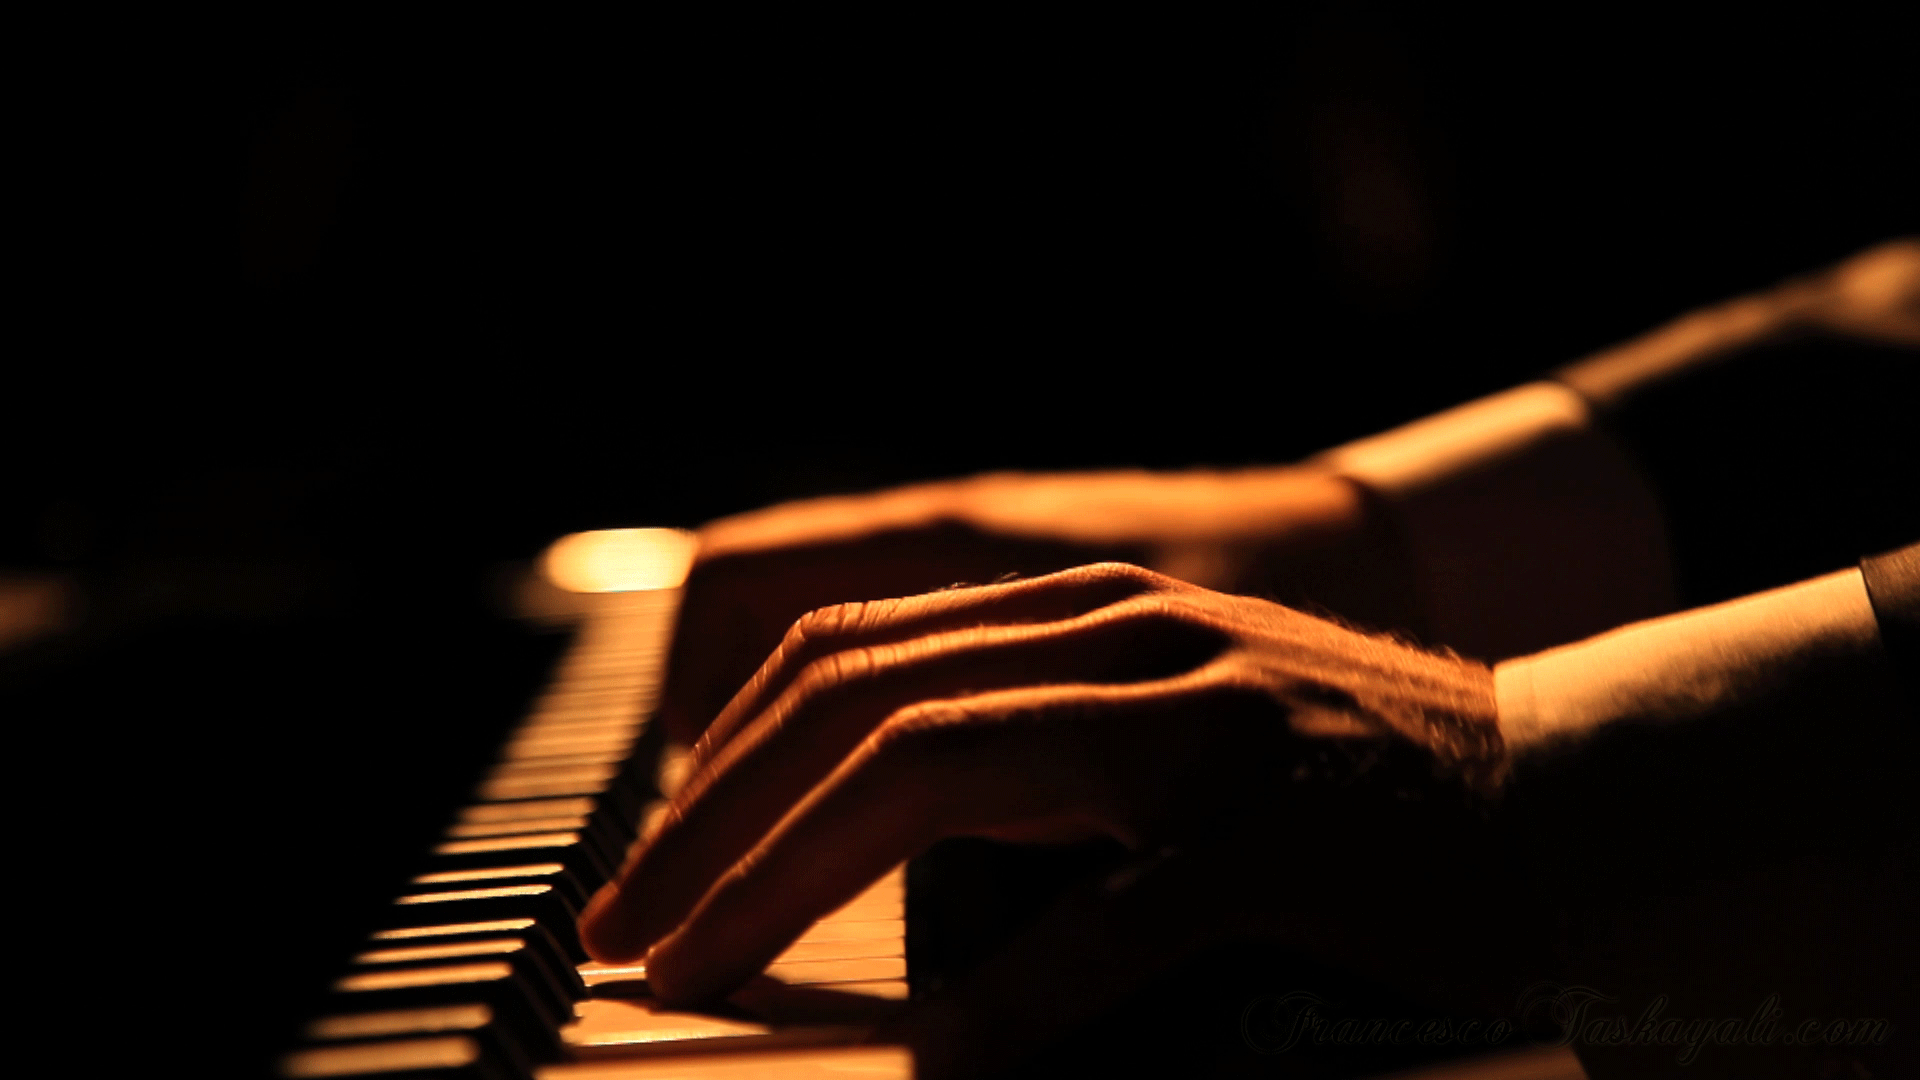 Wallpapers For Classical Music Piano Wallpaper 1920x1080